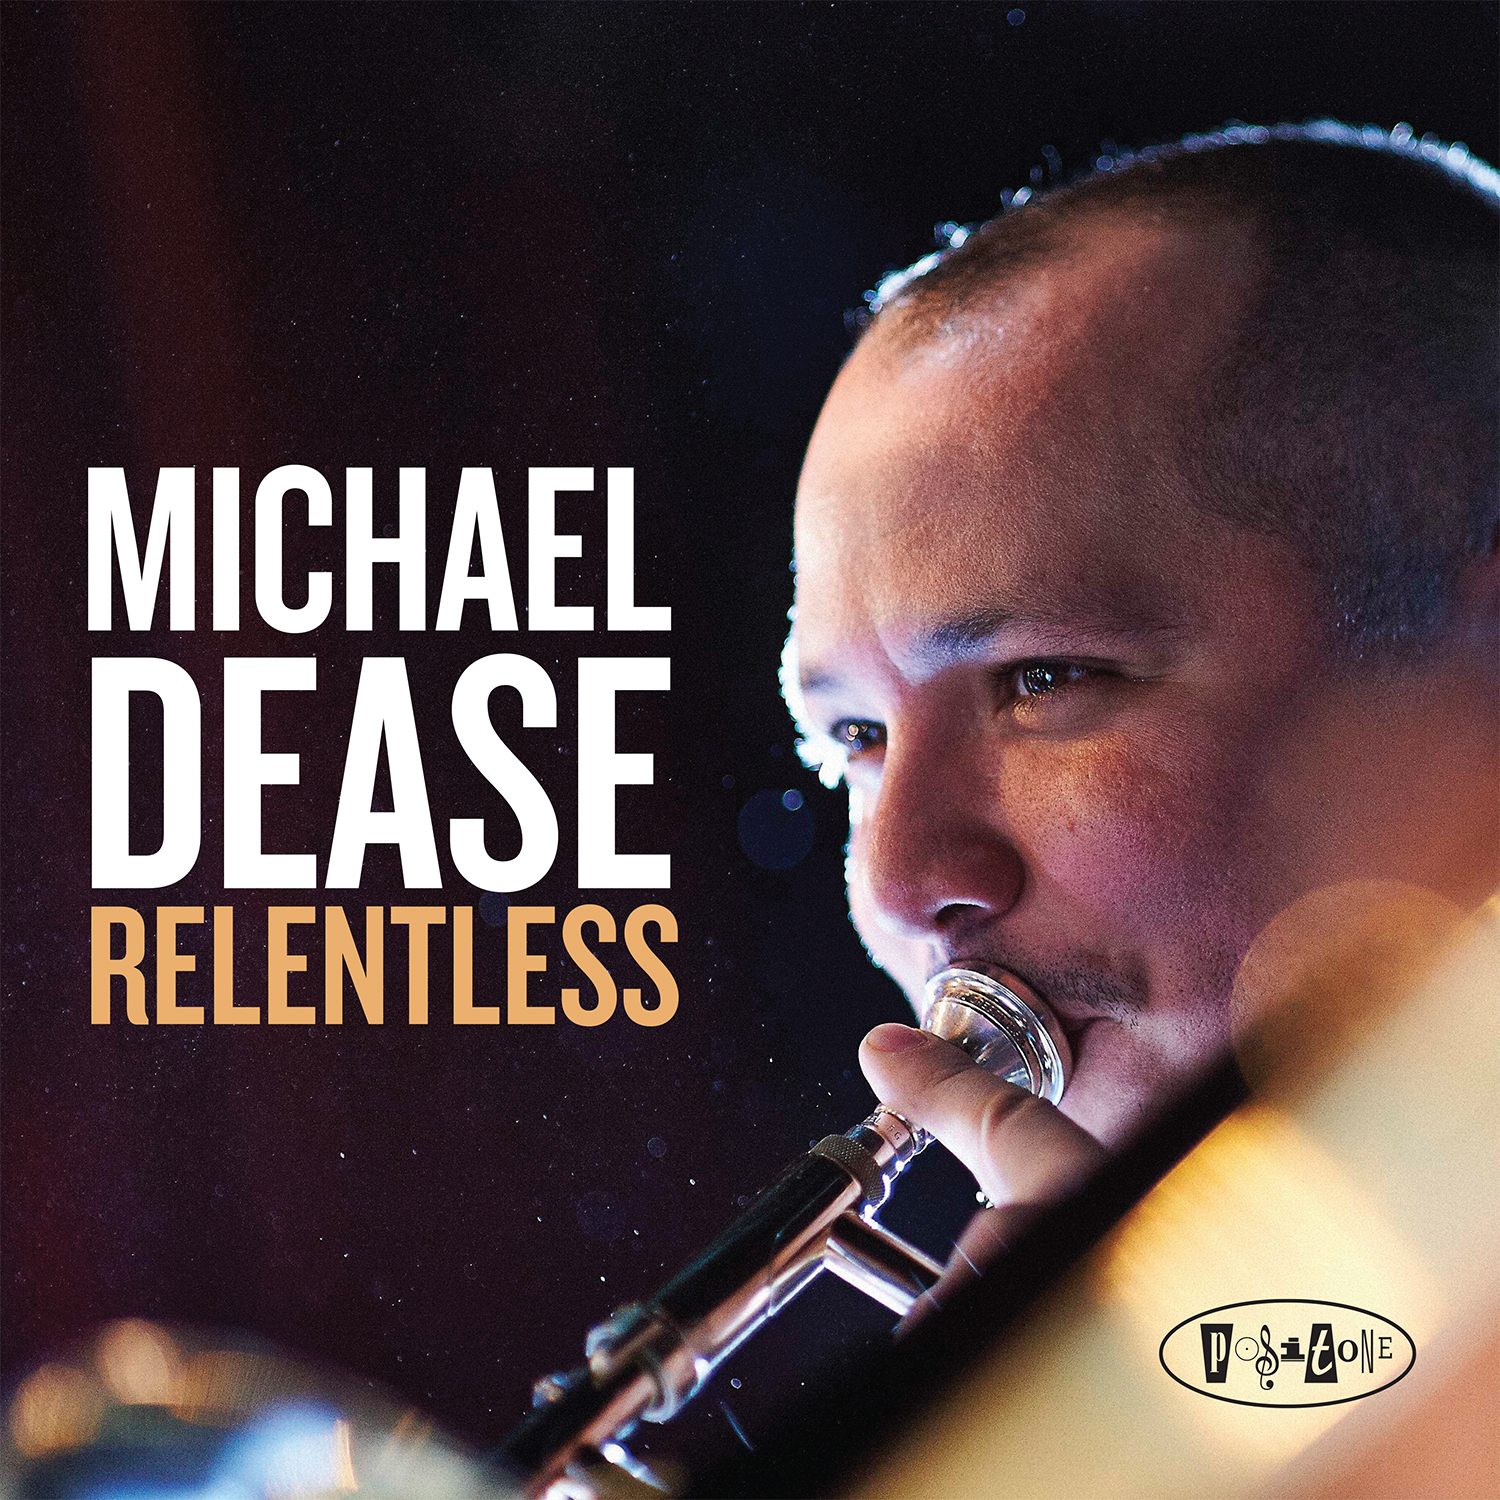 Relentess (2013) Big Band feat. Greg Gisbert, Ulysses Owens Jr. Linda Oh, Tim Green, Tom Bones Malone and Wyclife Gordon.